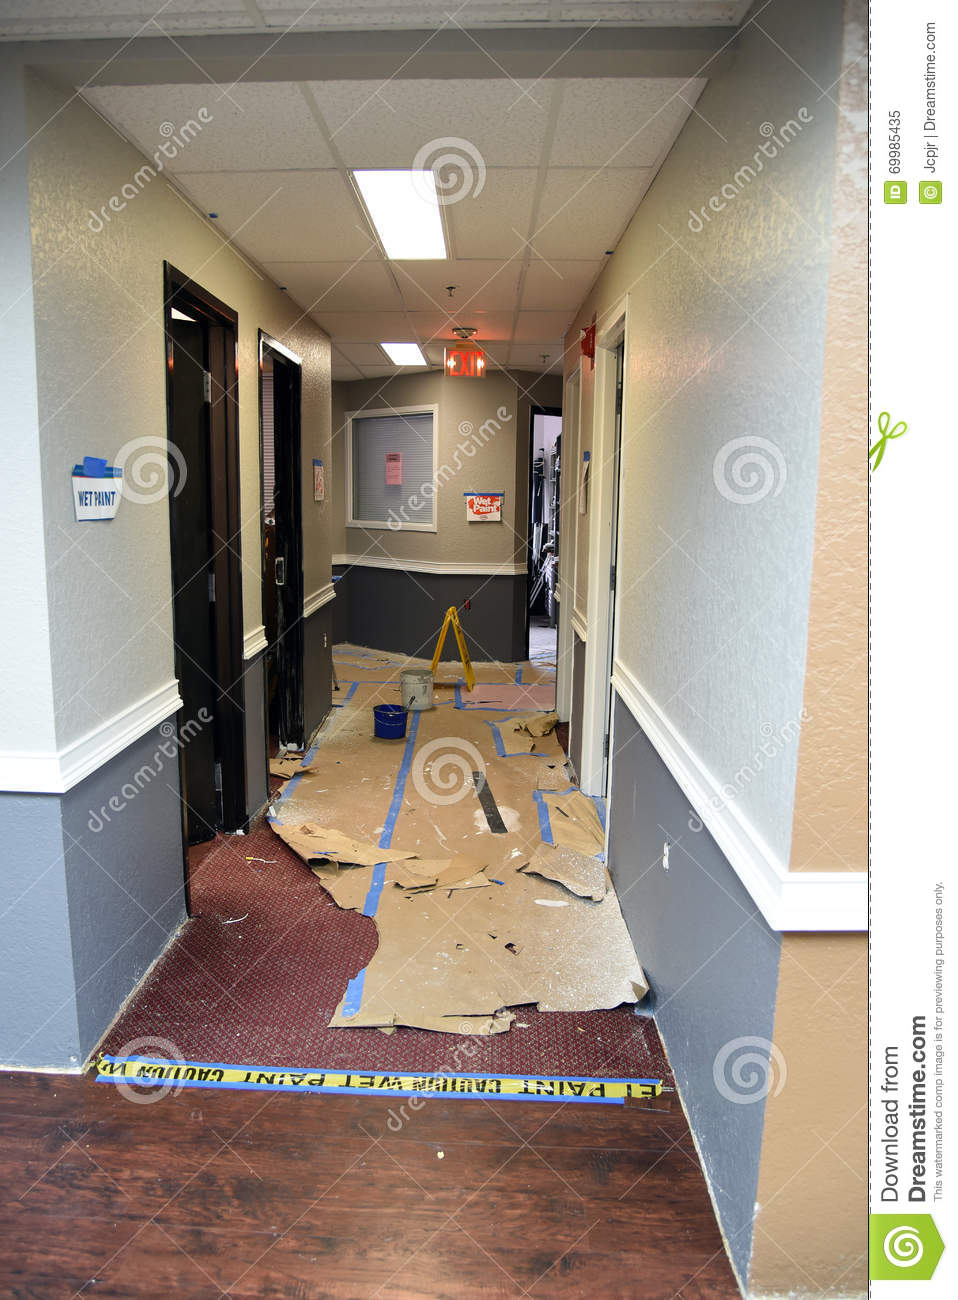 Office Hallway Painting Stock Photo Image 69985435